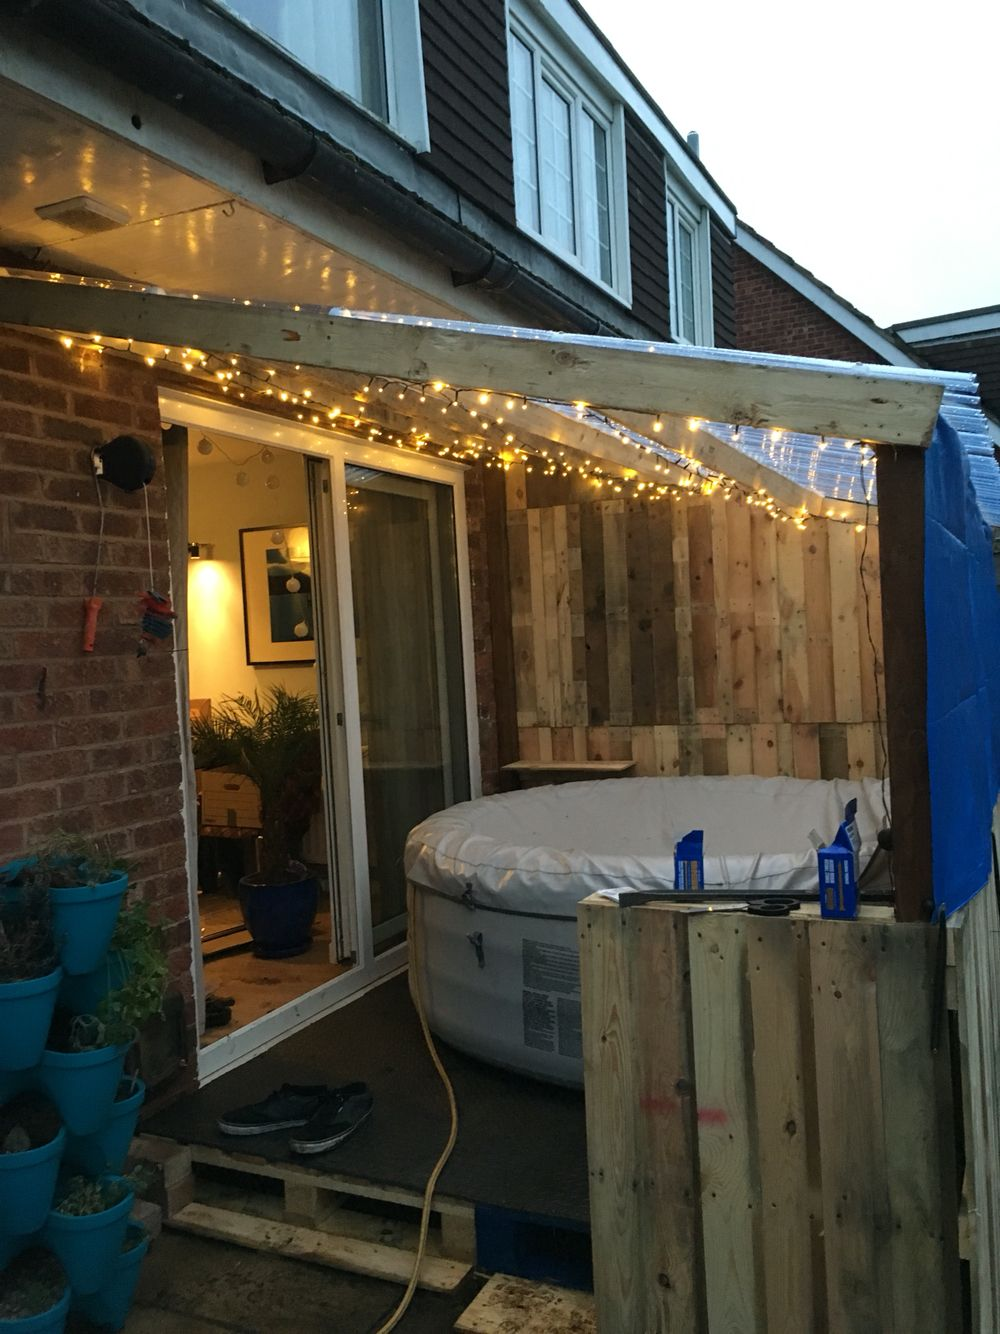 Lay-spa Recycled Pallet Hot Tub In 2019